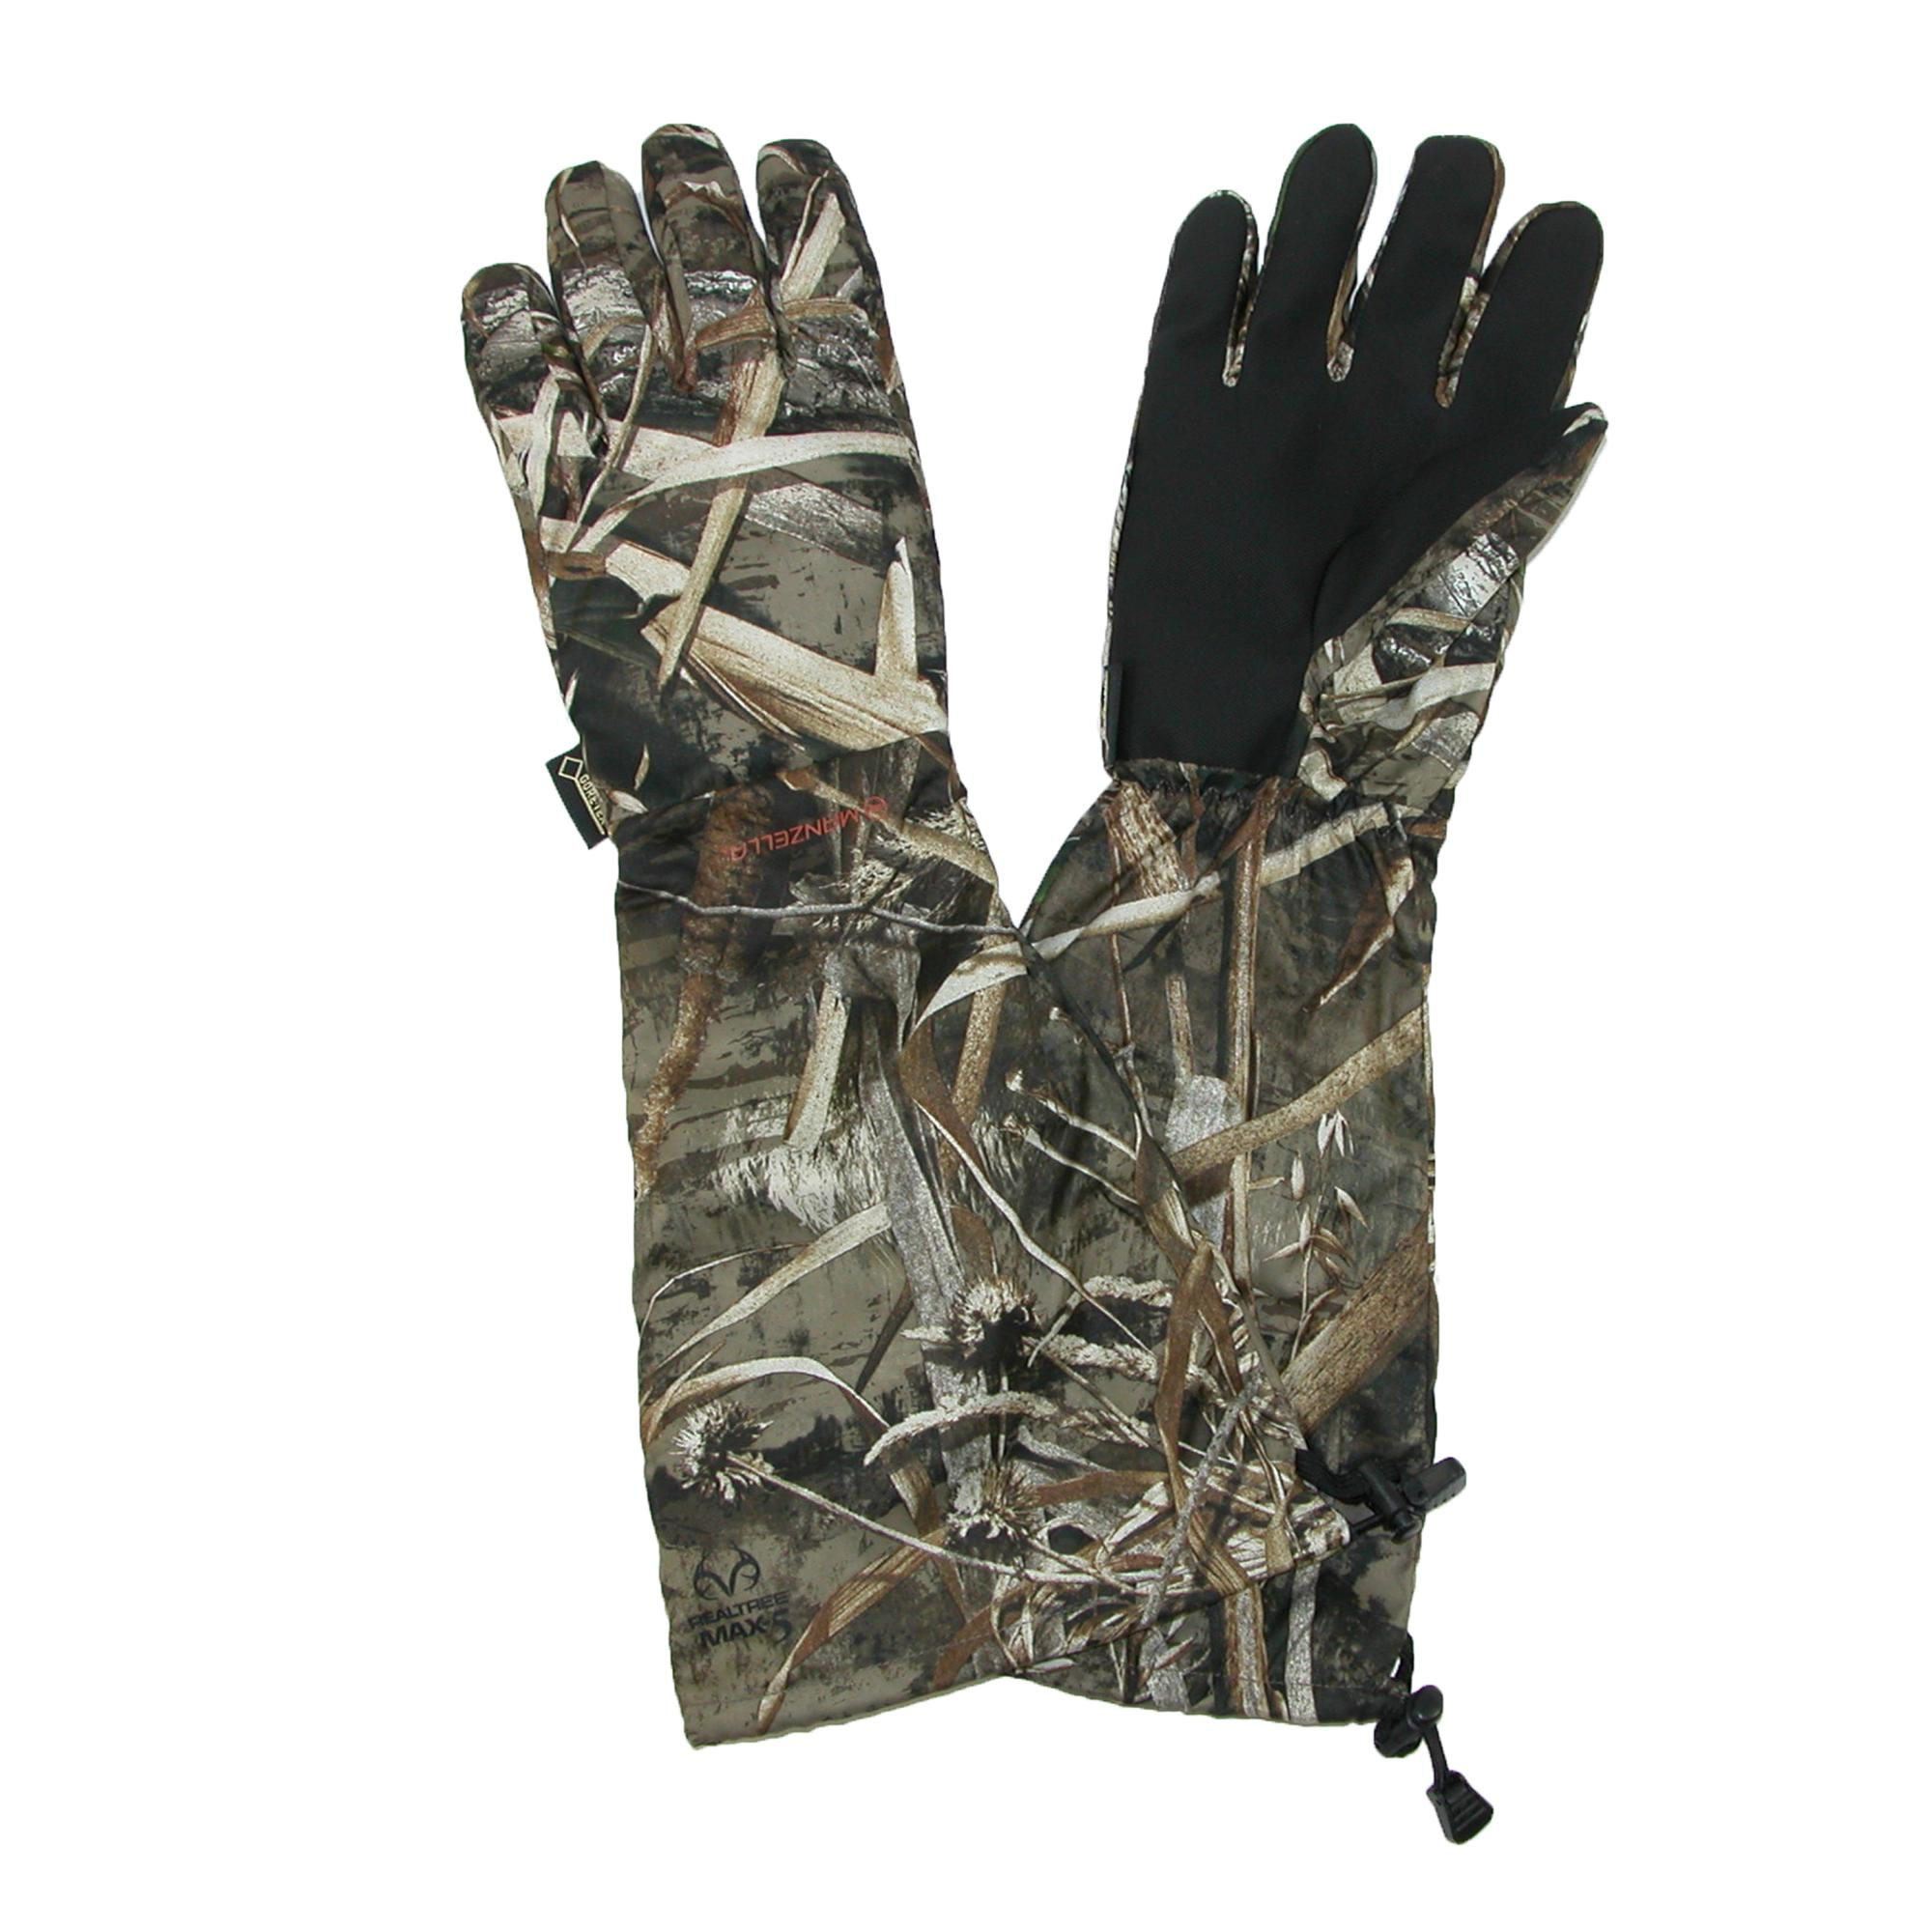 Manzella Mens Gore-tex Realtree Max 5 Hunting Gloves With Extended Cuff